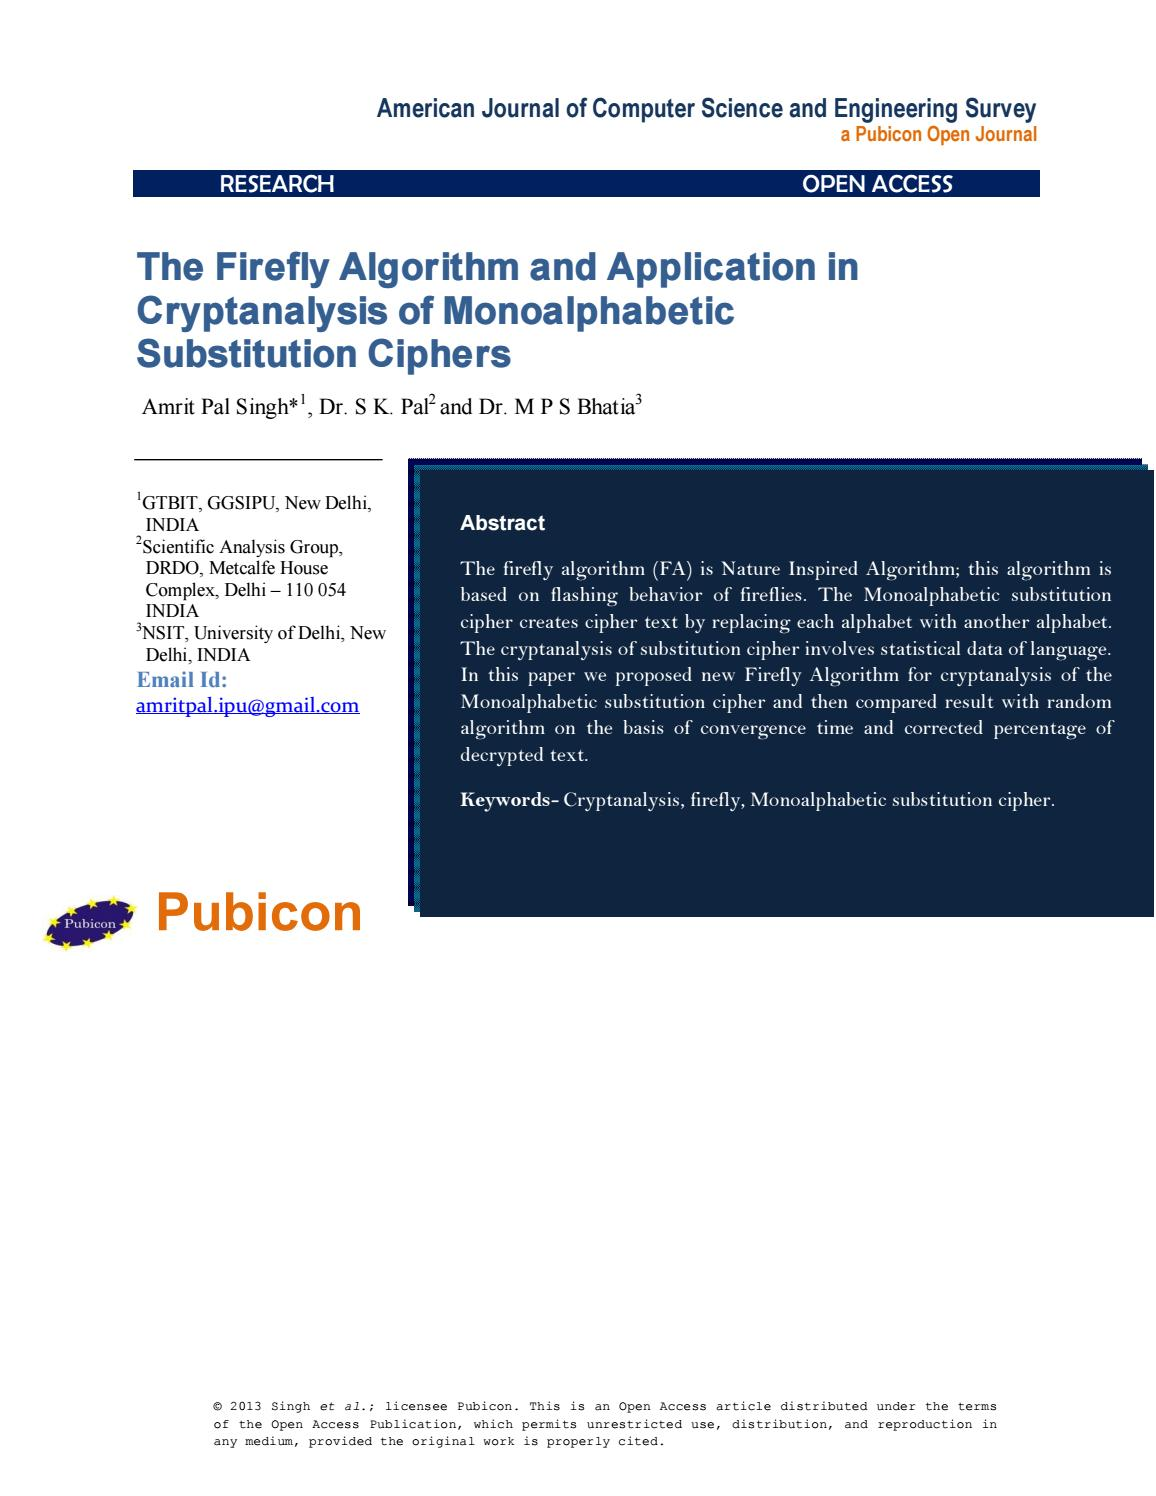 The Firefly Algorithm and Application in Cryptanalysis of